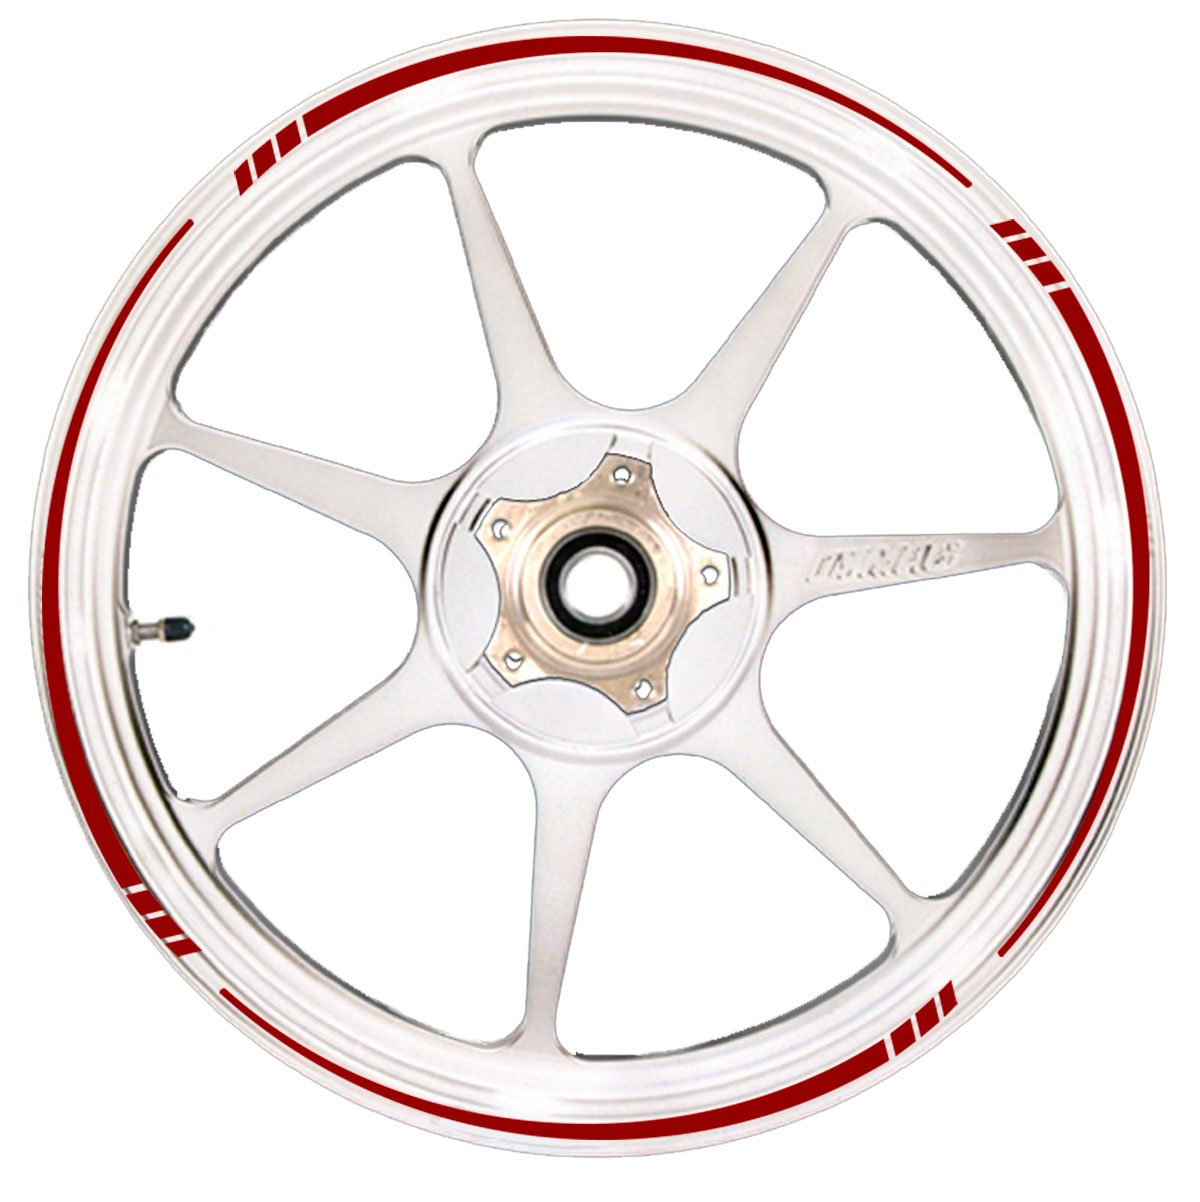 Deep Red Wheel Rim Tape Speed Tapered Stripe Fit All